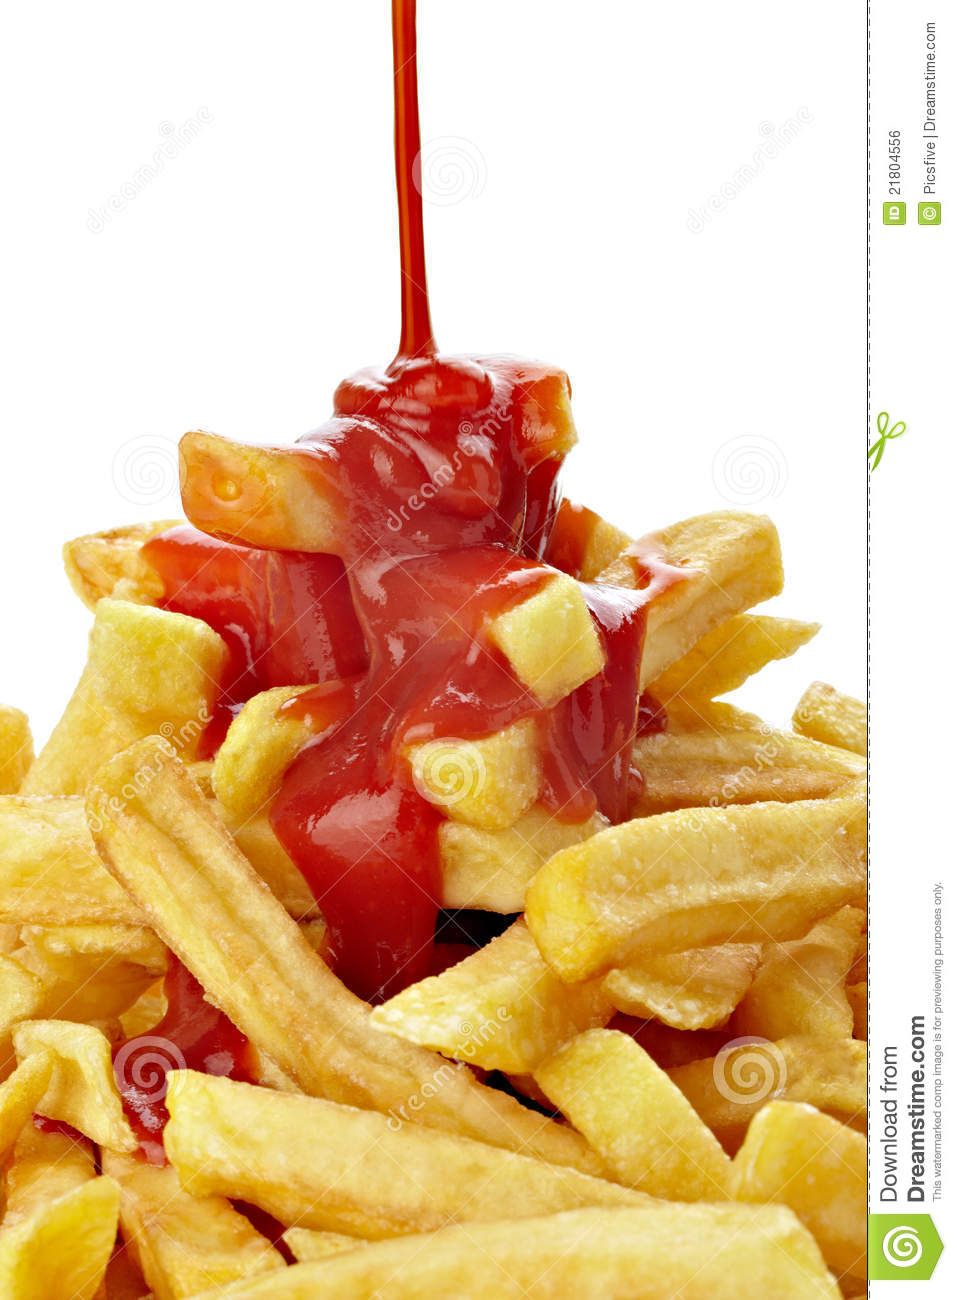 french fries with ketchup - photo #16